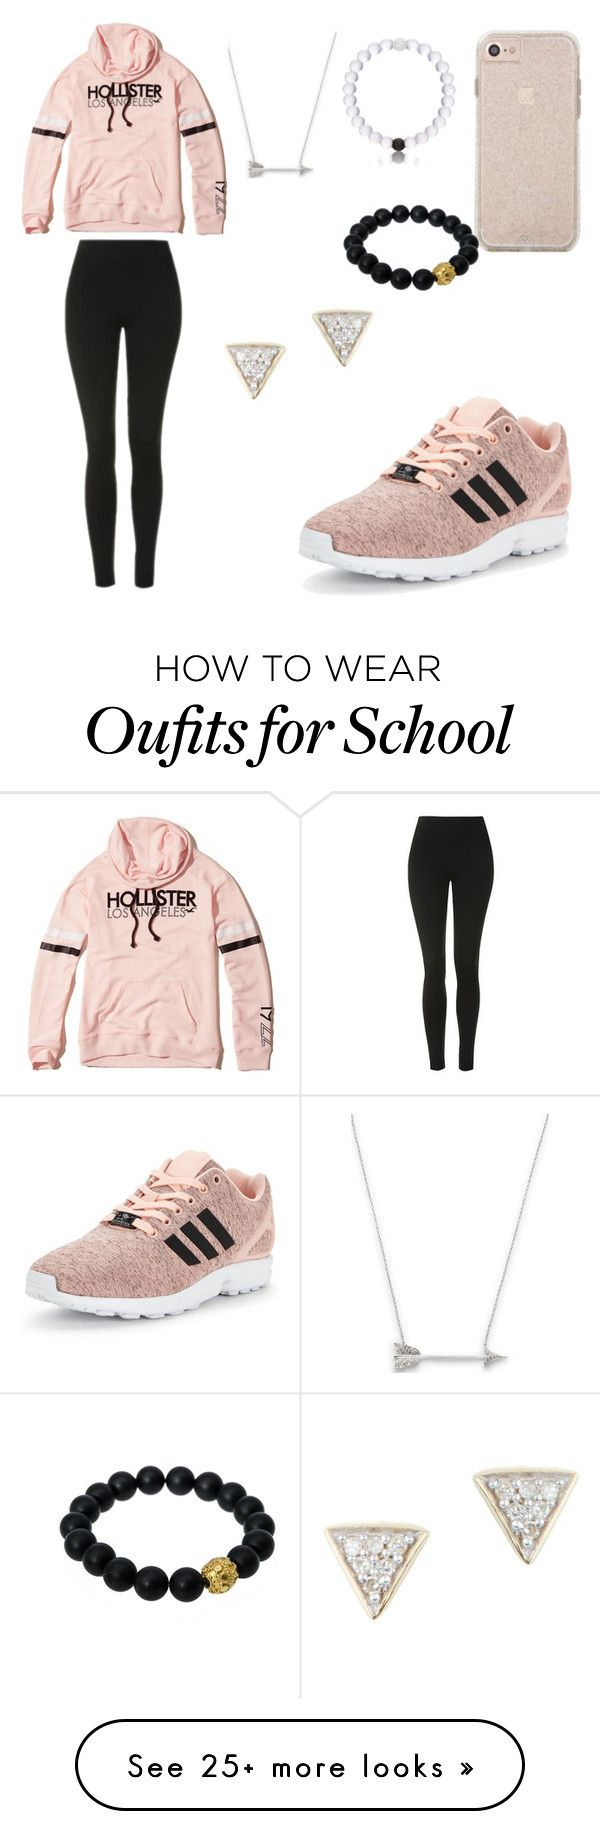 """HIGH SCHOOL STYLE"" by mgarcia-iii on Polyvore featuring Estella Bartlett, Berluti, Adina Reyter, adidas Originals, Hollister Co. and Topshop"